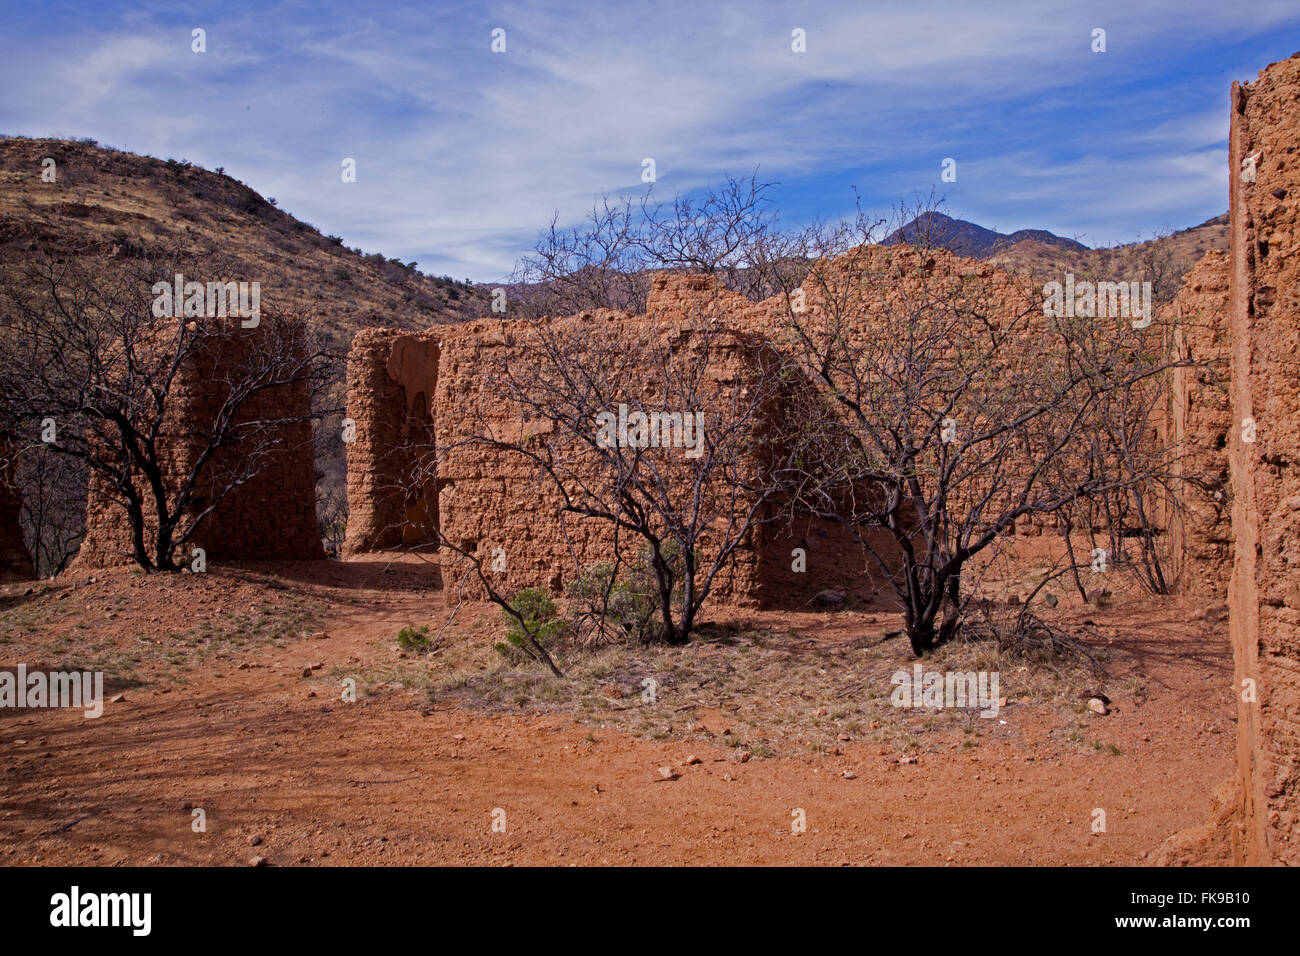 Alto Arizona, a ghost town interior of the adobe mud walls with scrub oak growing in the interior of the Bond home/postoffice. - Stock Image